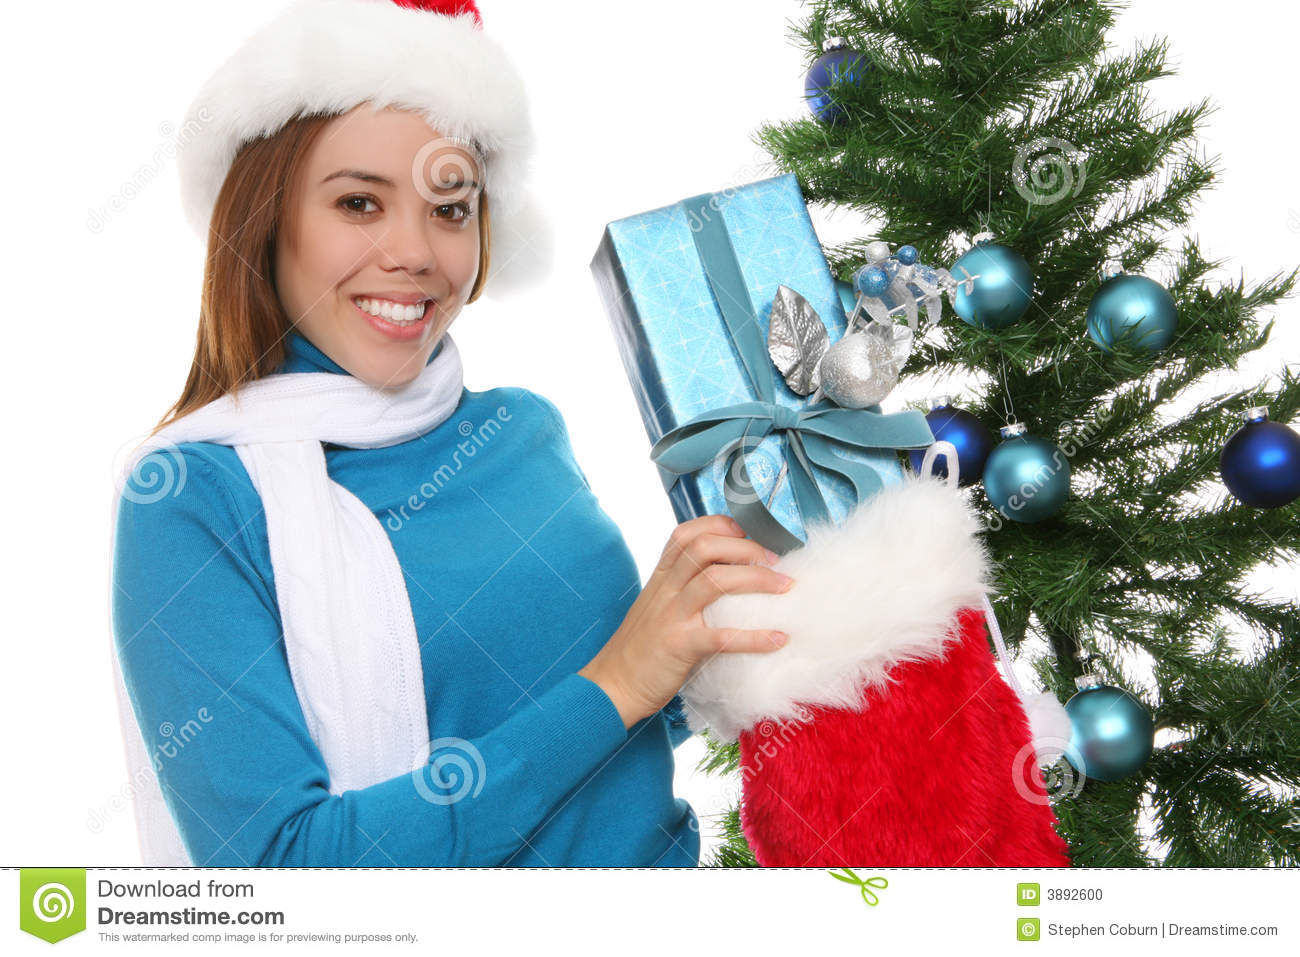 Donna felice a natale